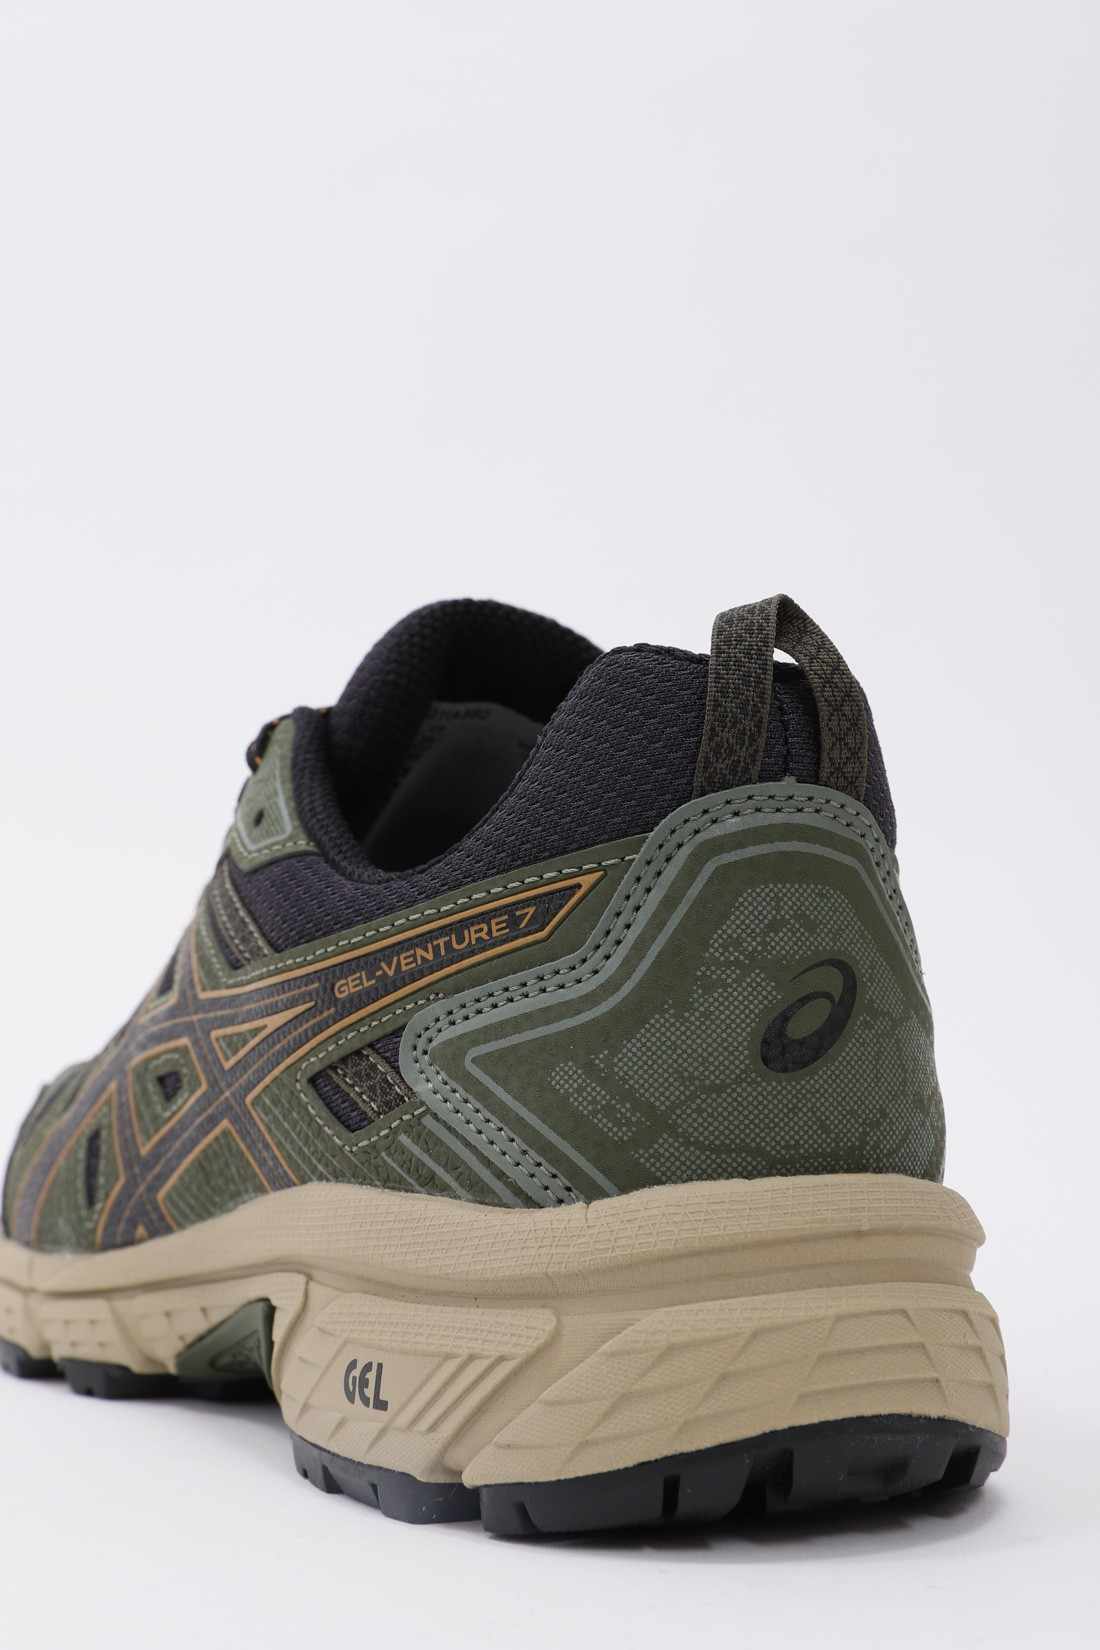 ASICS / Gel-venture 7 Black tan presidio